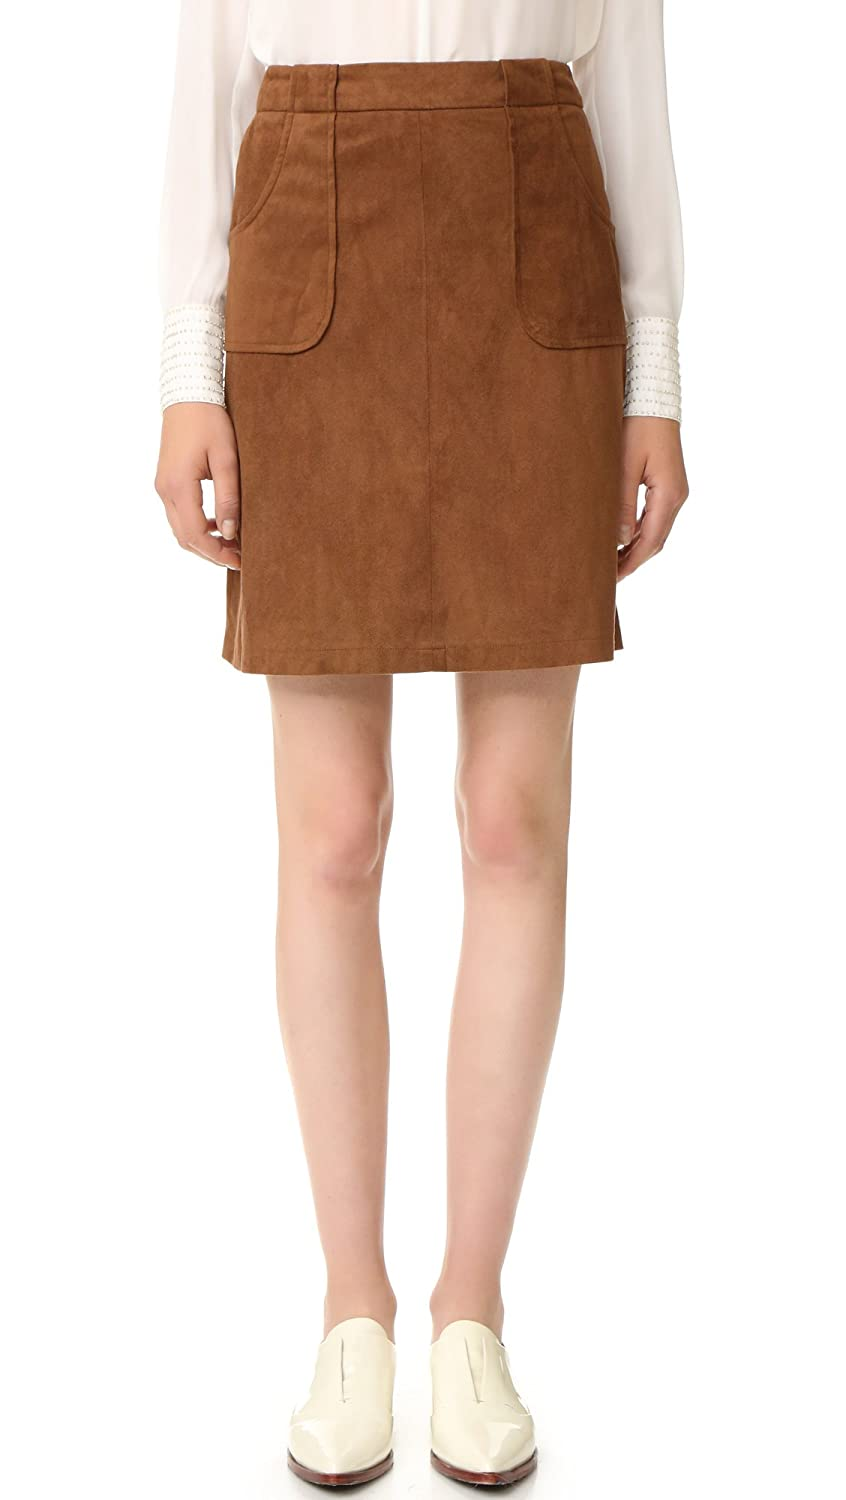 BB Dakota Women's Belfort Faux Suede Skirt